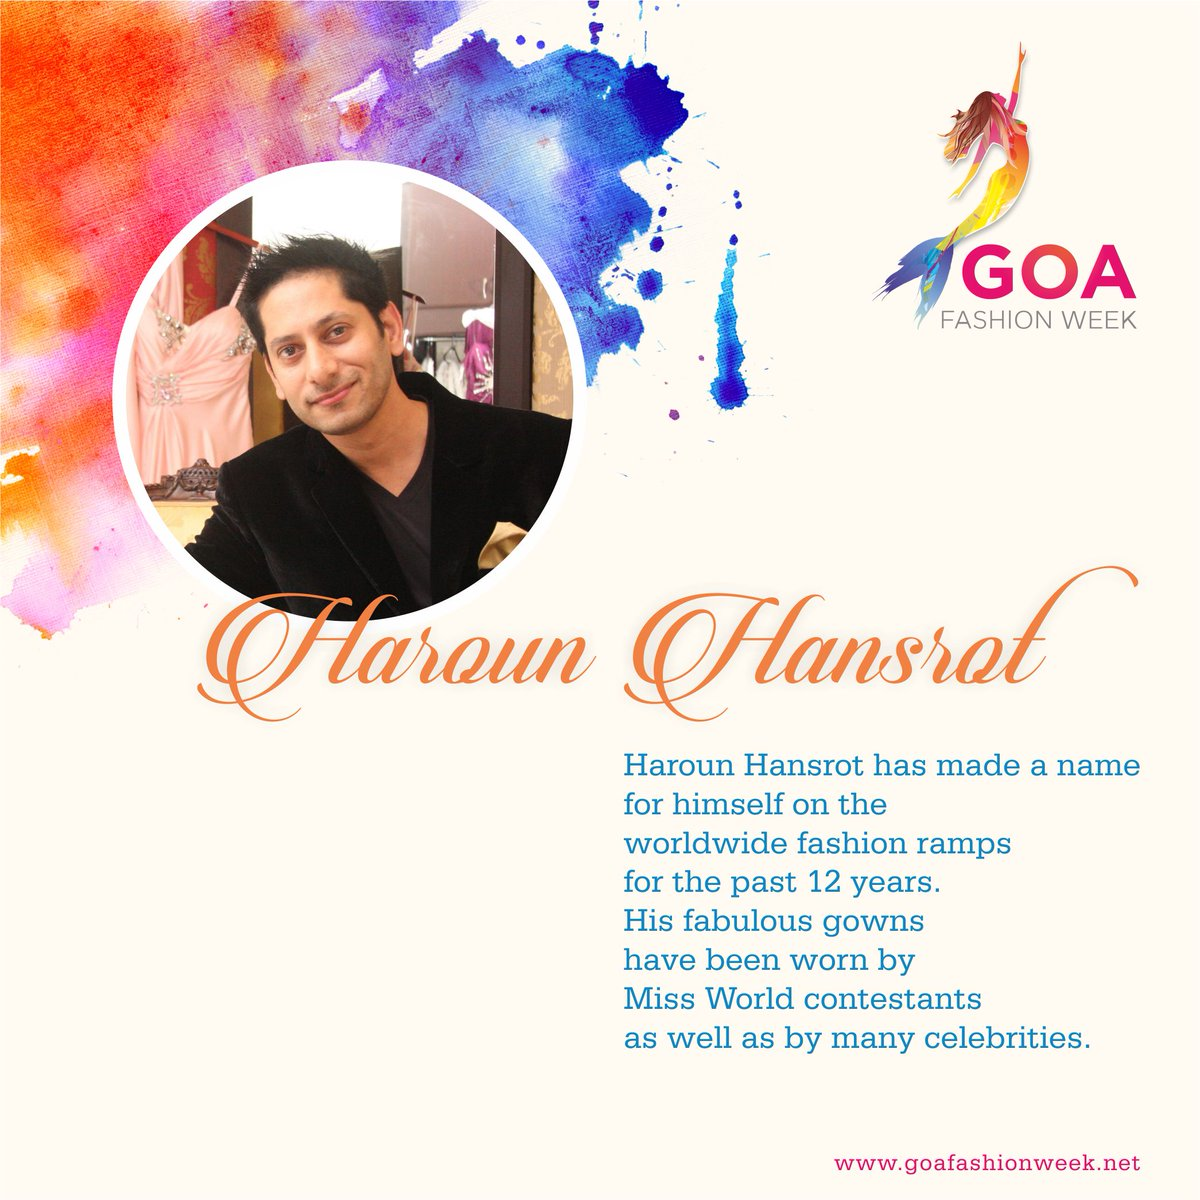 An epitome of one the most successful and talented fashion designers in the world Mr . Haroun Hansrot !   http://www. goafashionweek.net / &nbsp;    #GFW #fashionweek #fashion #goafashionweek #style<br>http://pic.twitter.com/9V0Hj15DvS